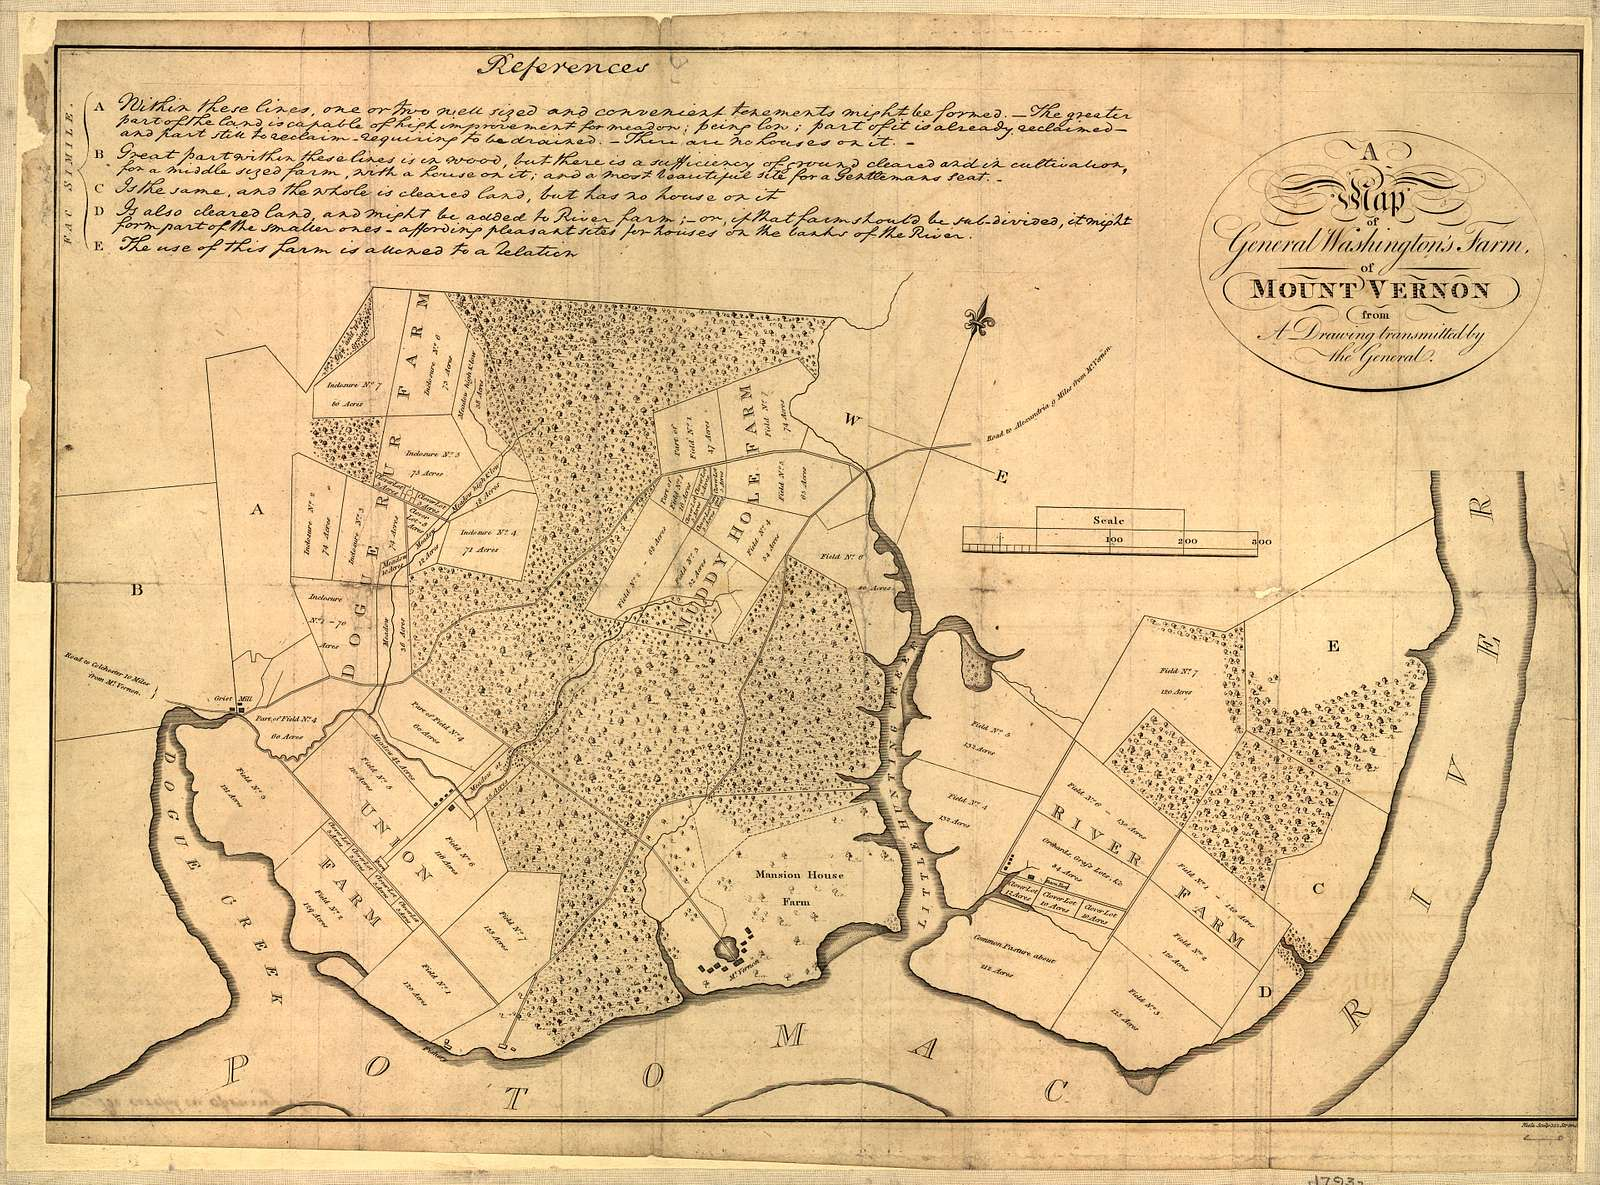 A map of General Washington's farm of Mount Vernon from a drawing transmitted by the General.